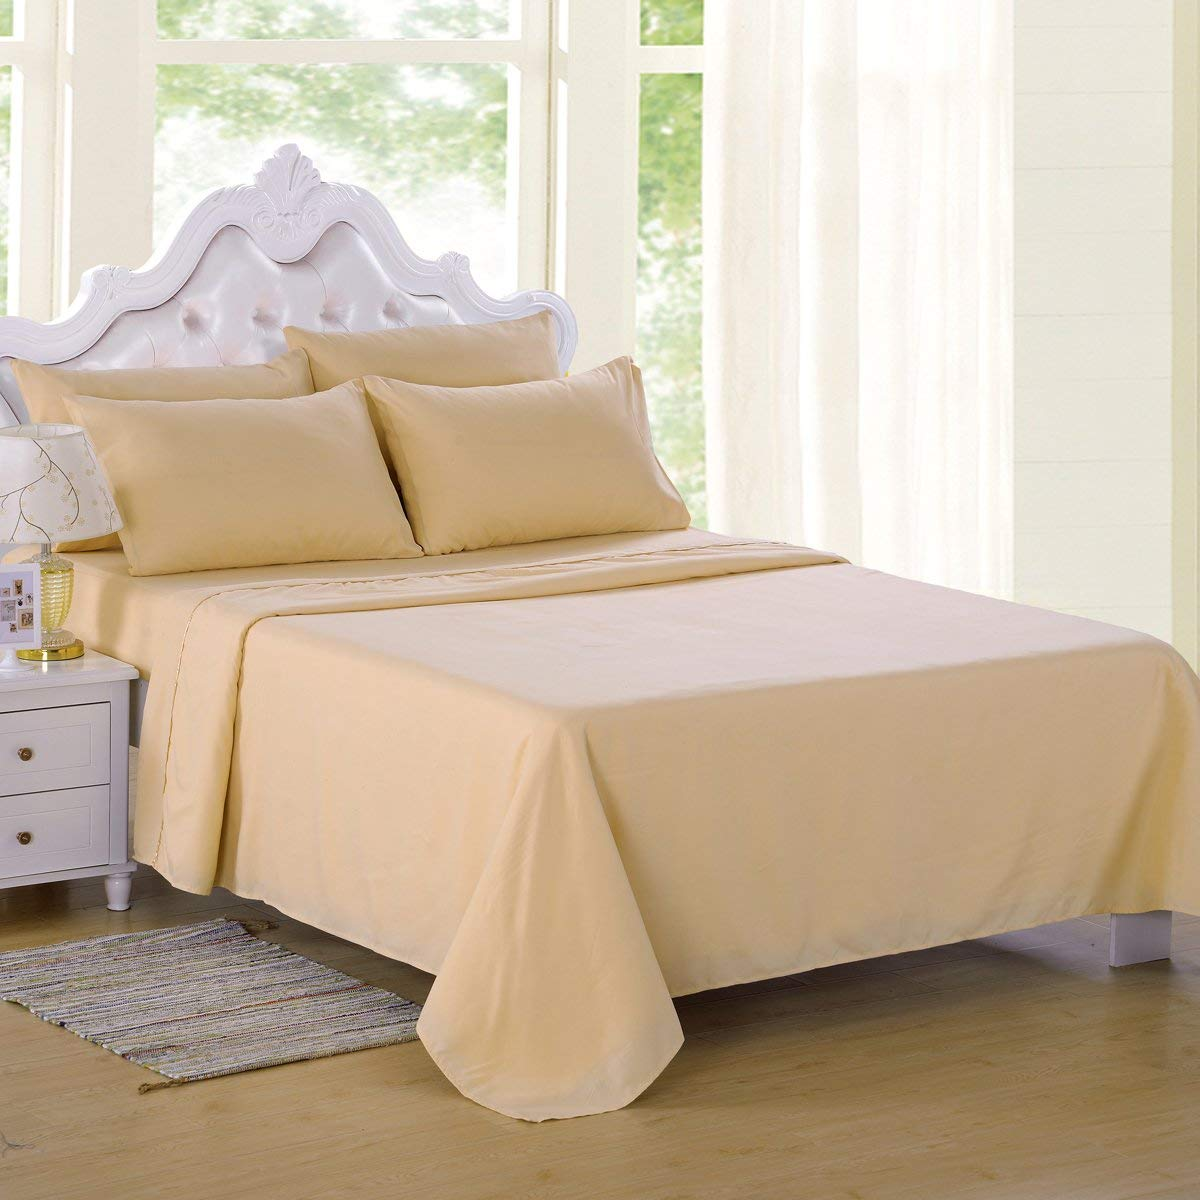 4 Piece Bedding Up To 14 Inch Silky Brushed Microfiber